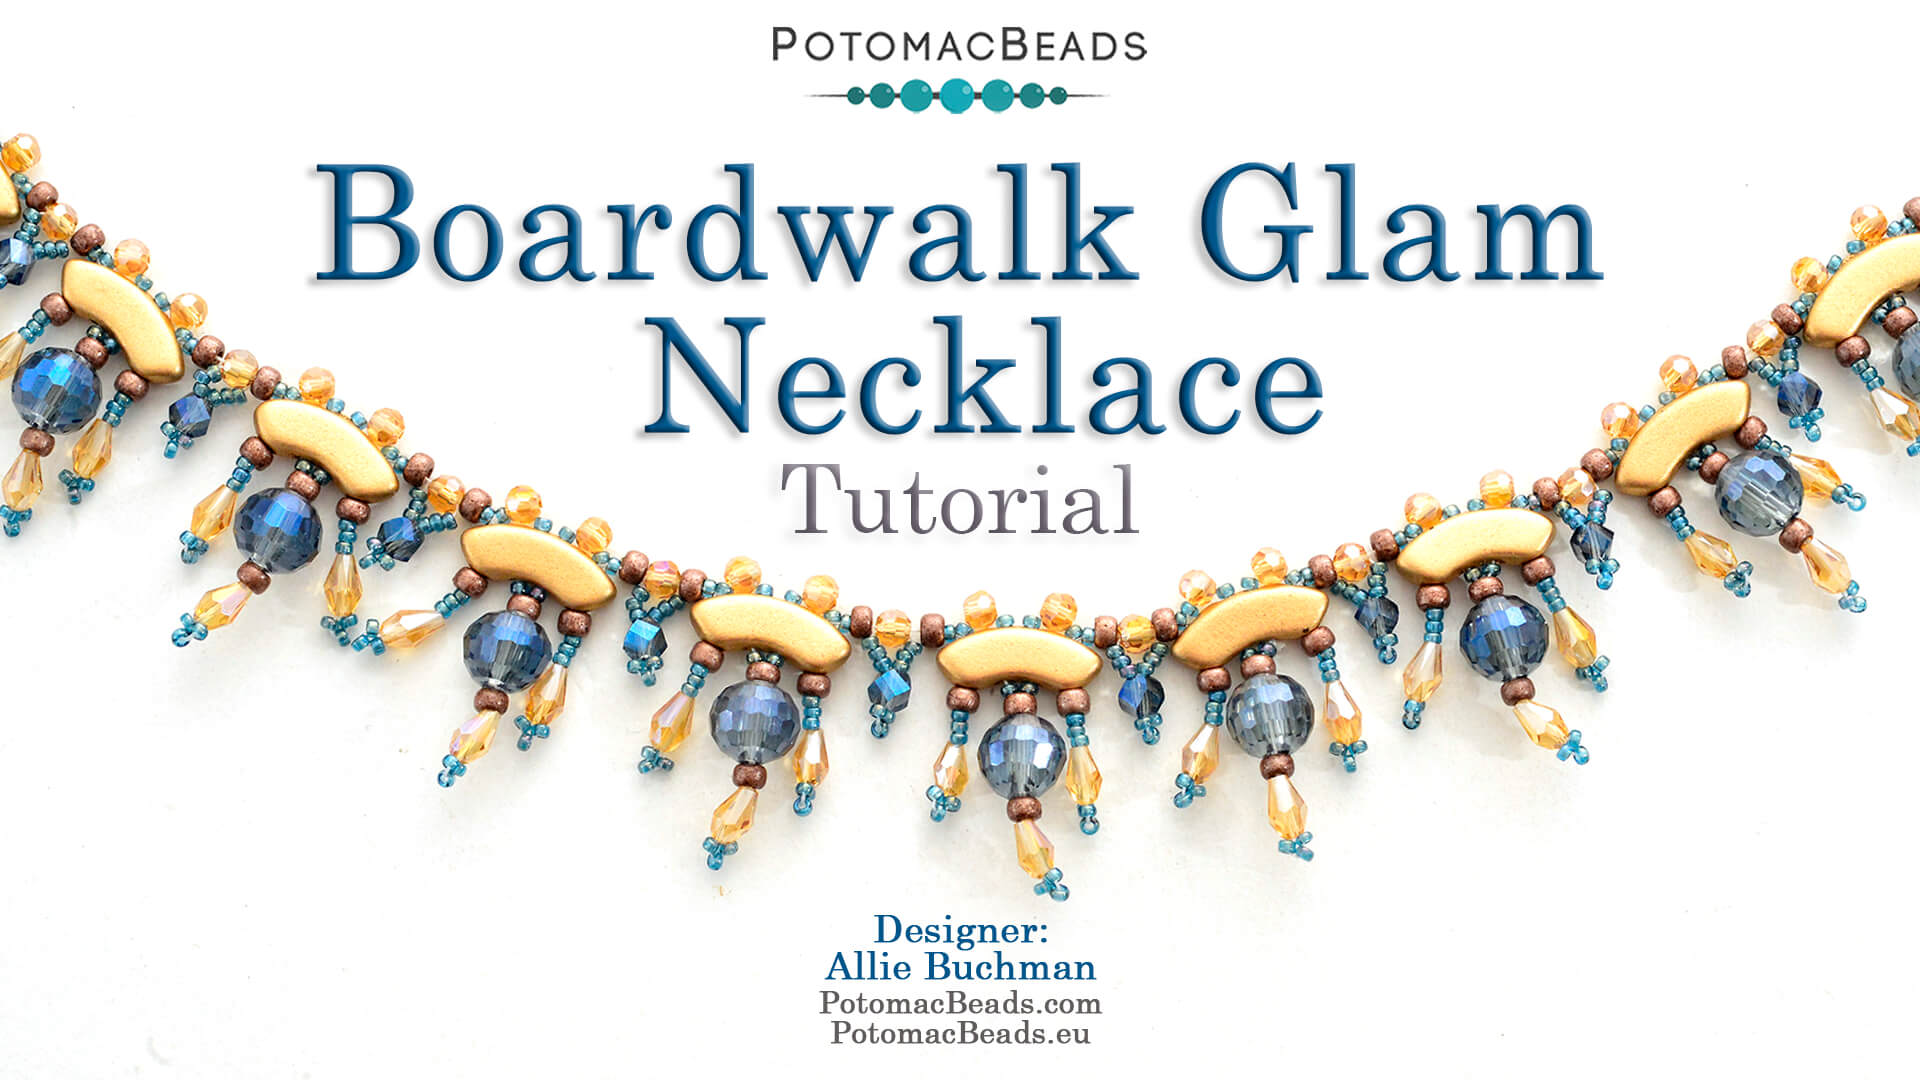 How to Bead / Videos Sorted by Beads / QuadBow & PieDuo Bead Videos / Boardwalk Glam Necklace Tutorial